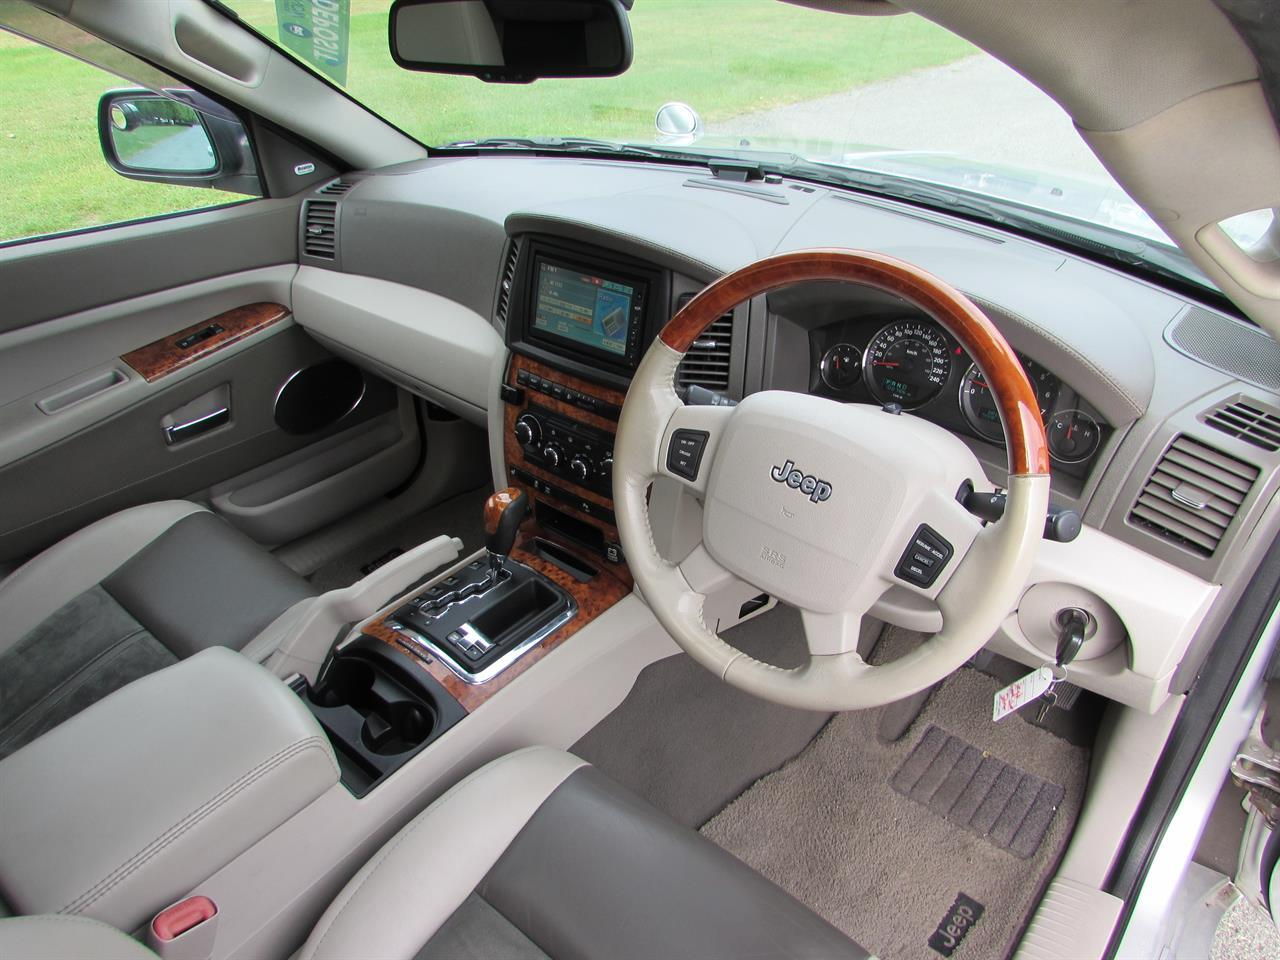 image-8, 2007 Jeep Grand Cherokee Limited 5.7L Hemi V8 at Christchurch